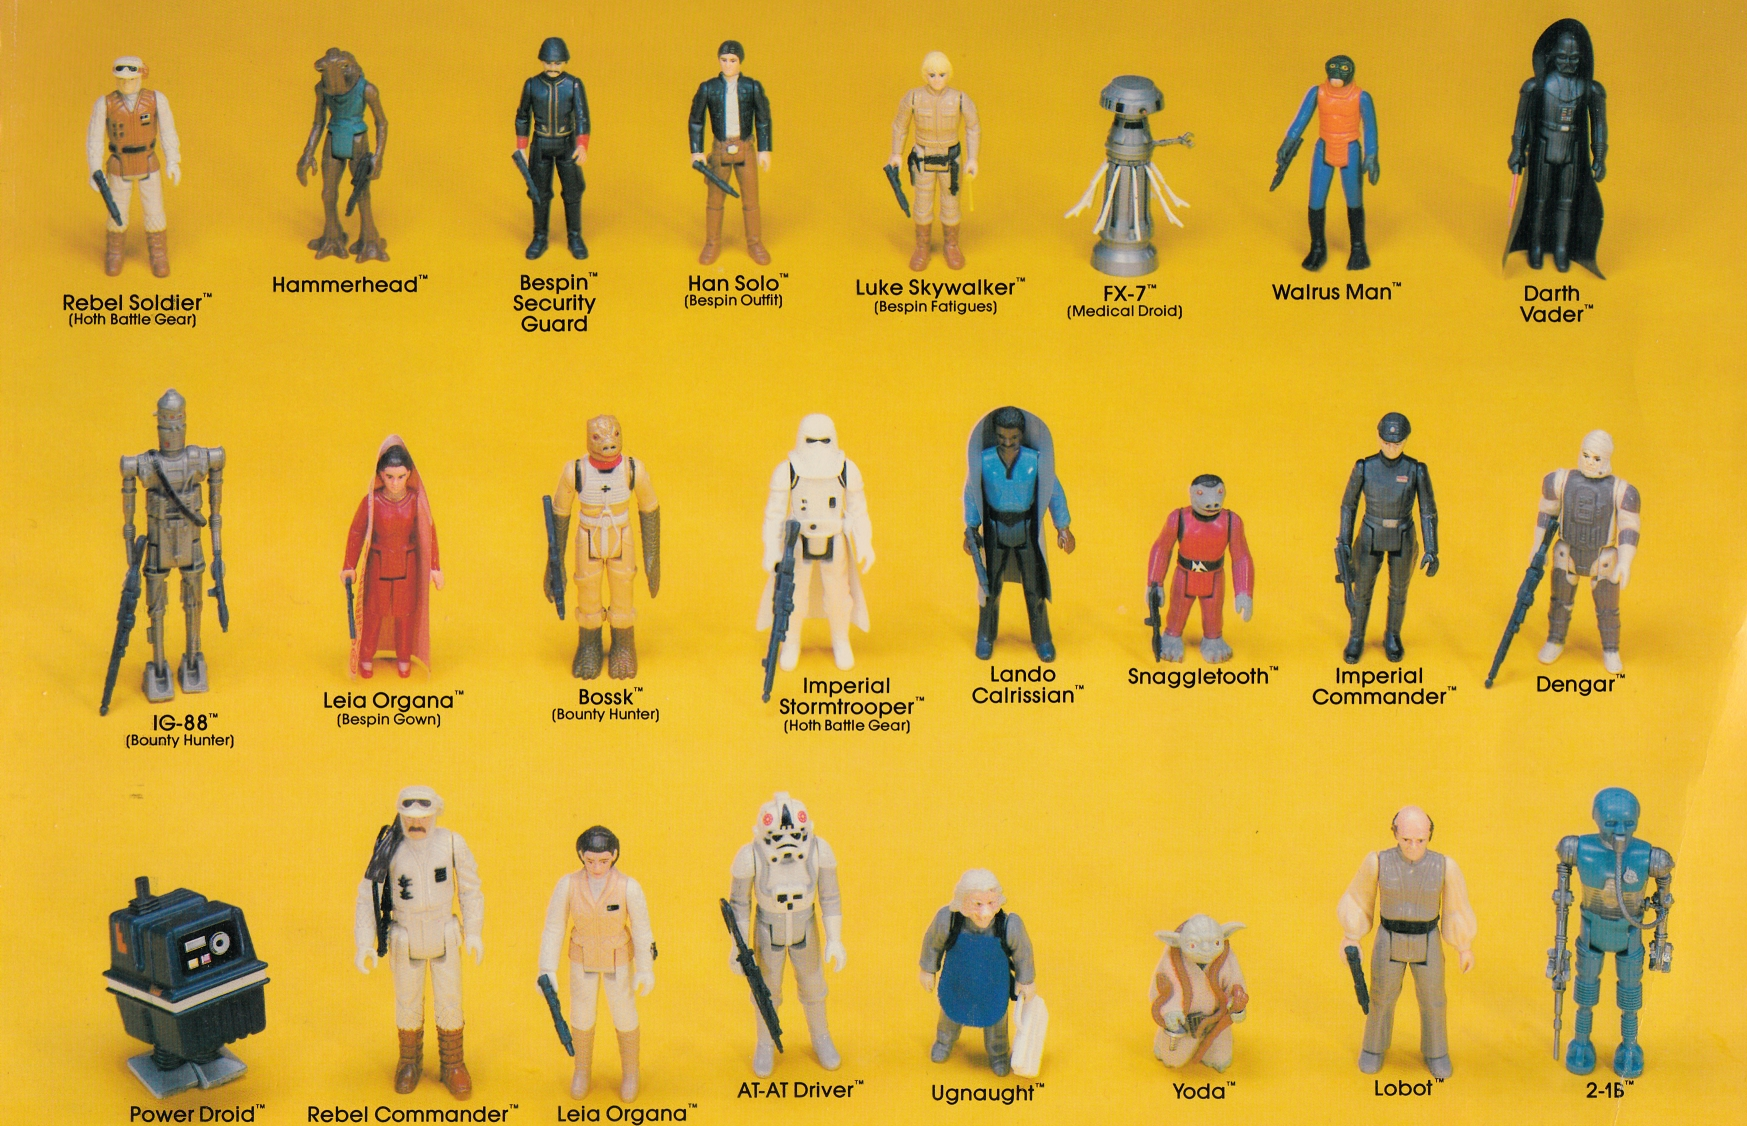 Old Star Wars Toys : Kenner s star wars toys variants a guide starwars